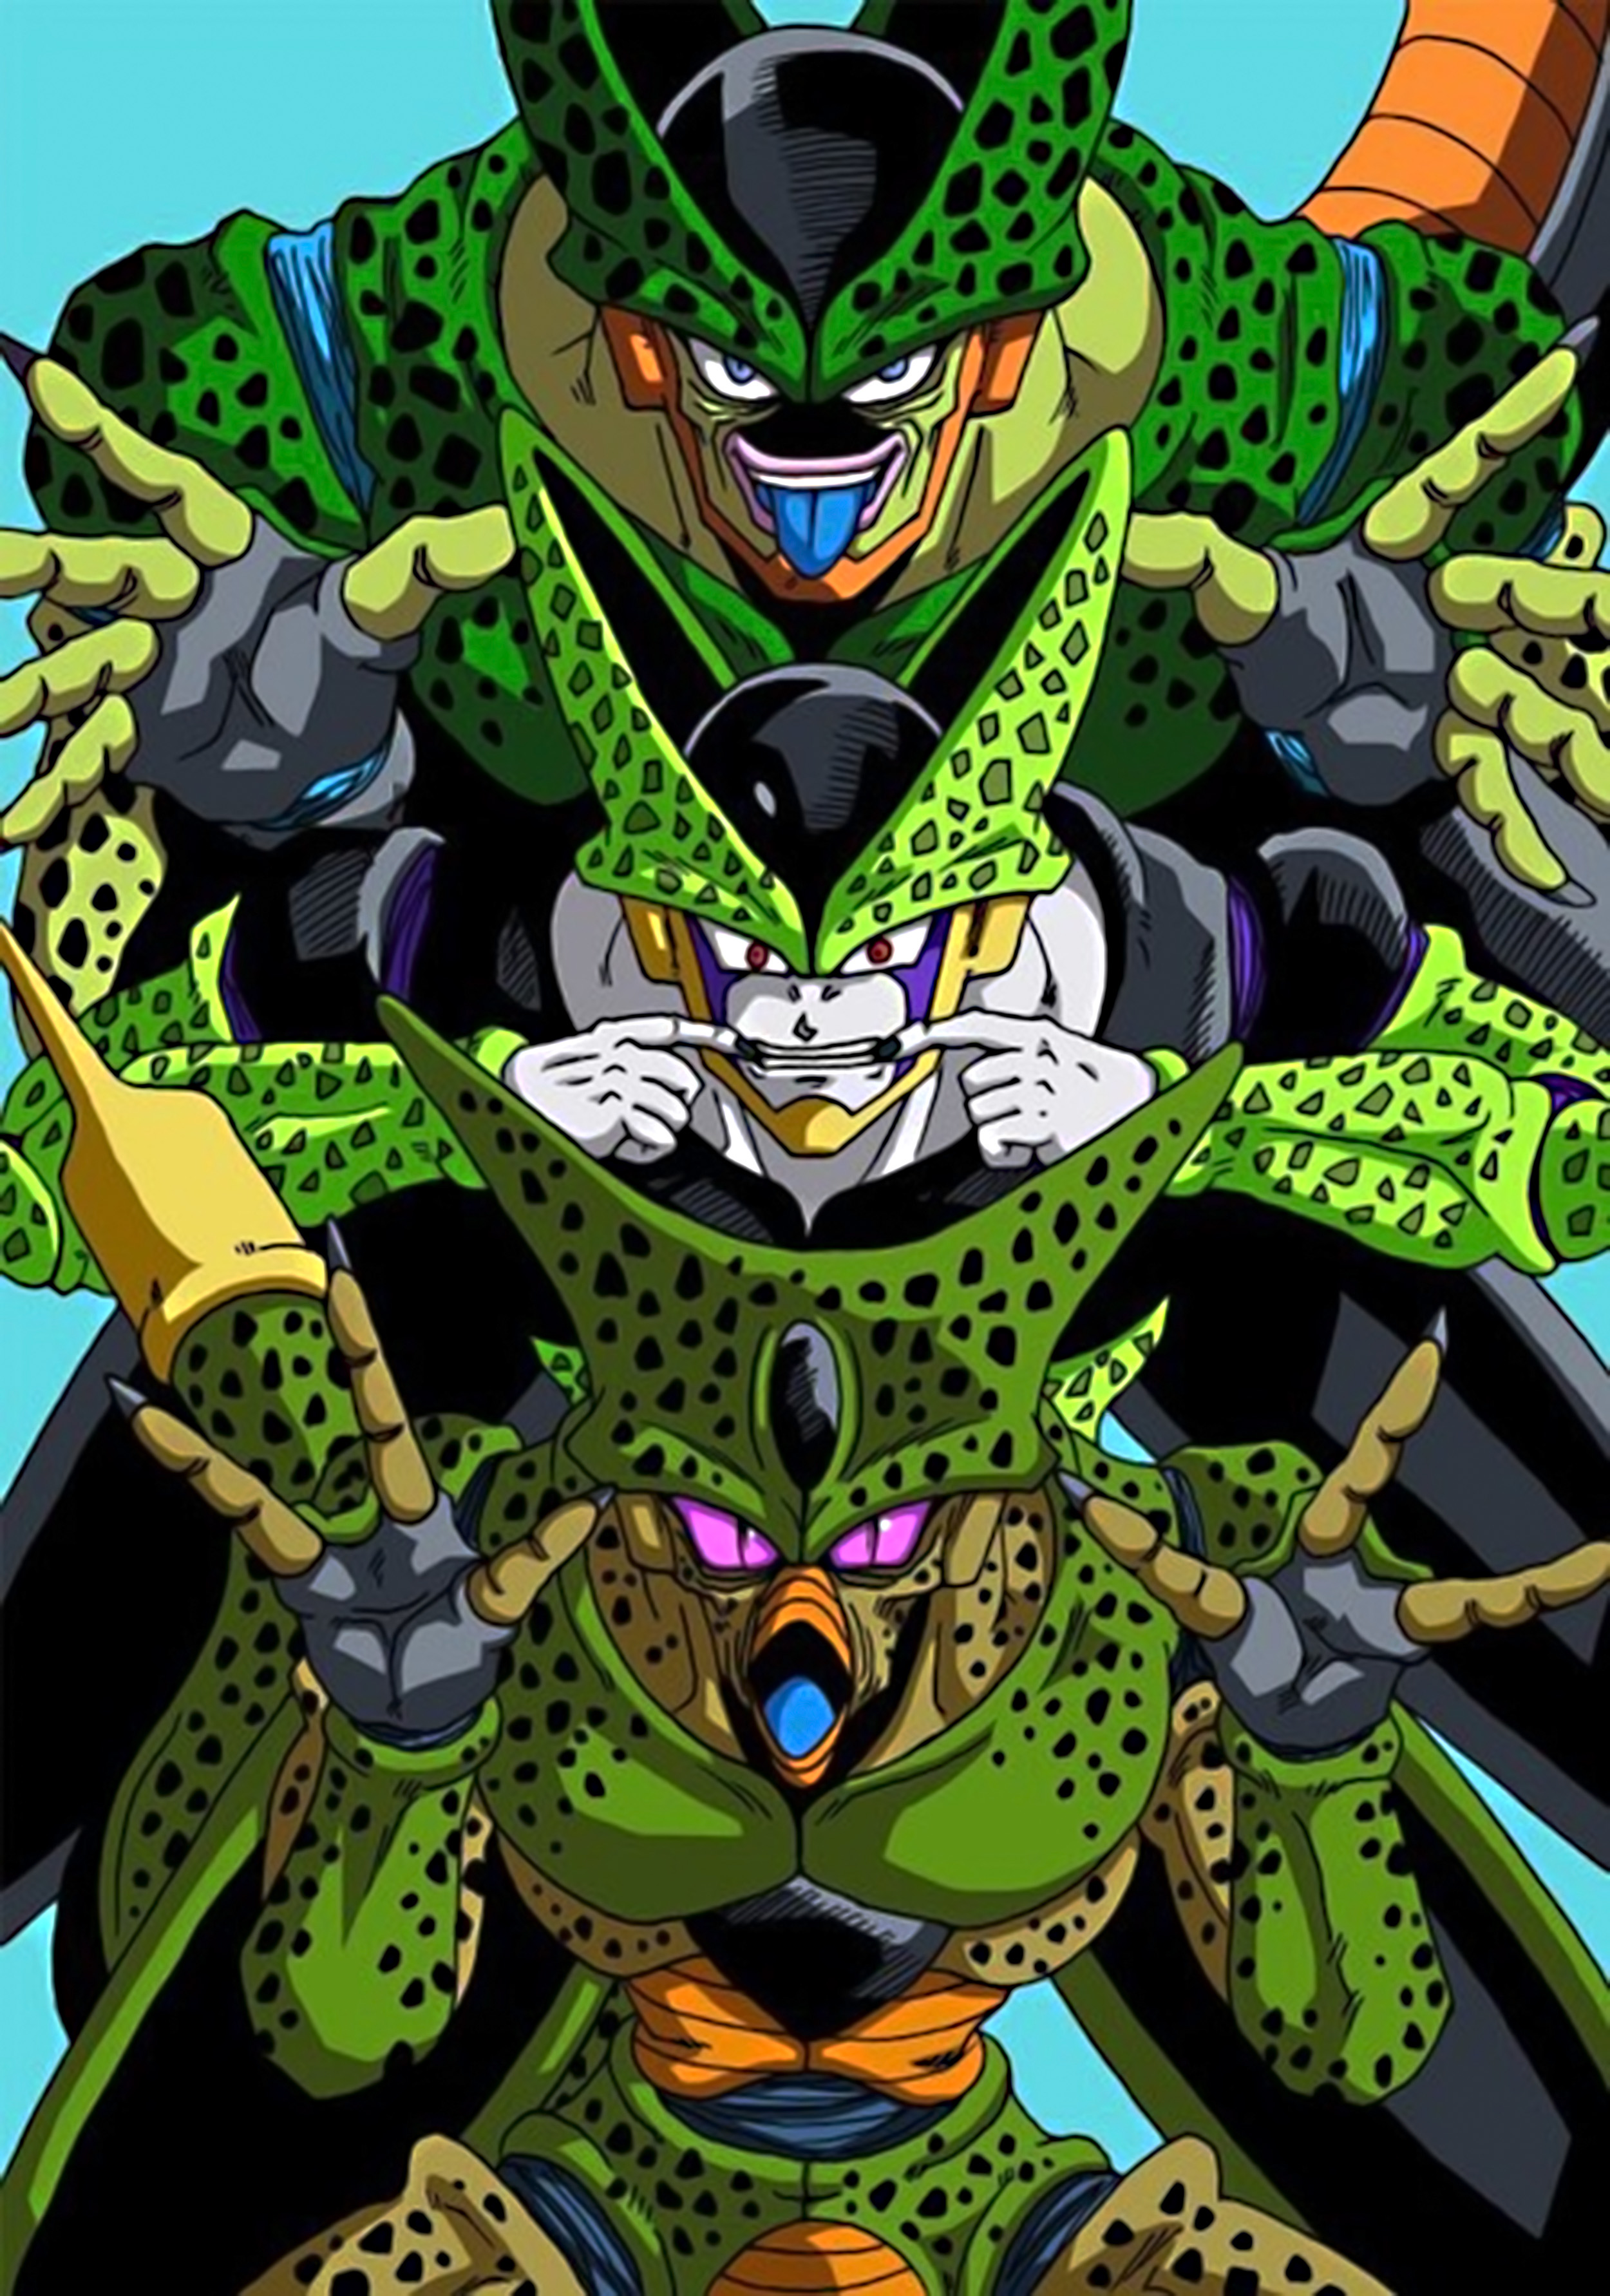 dragon ball z what would happen if cell fought majin buu